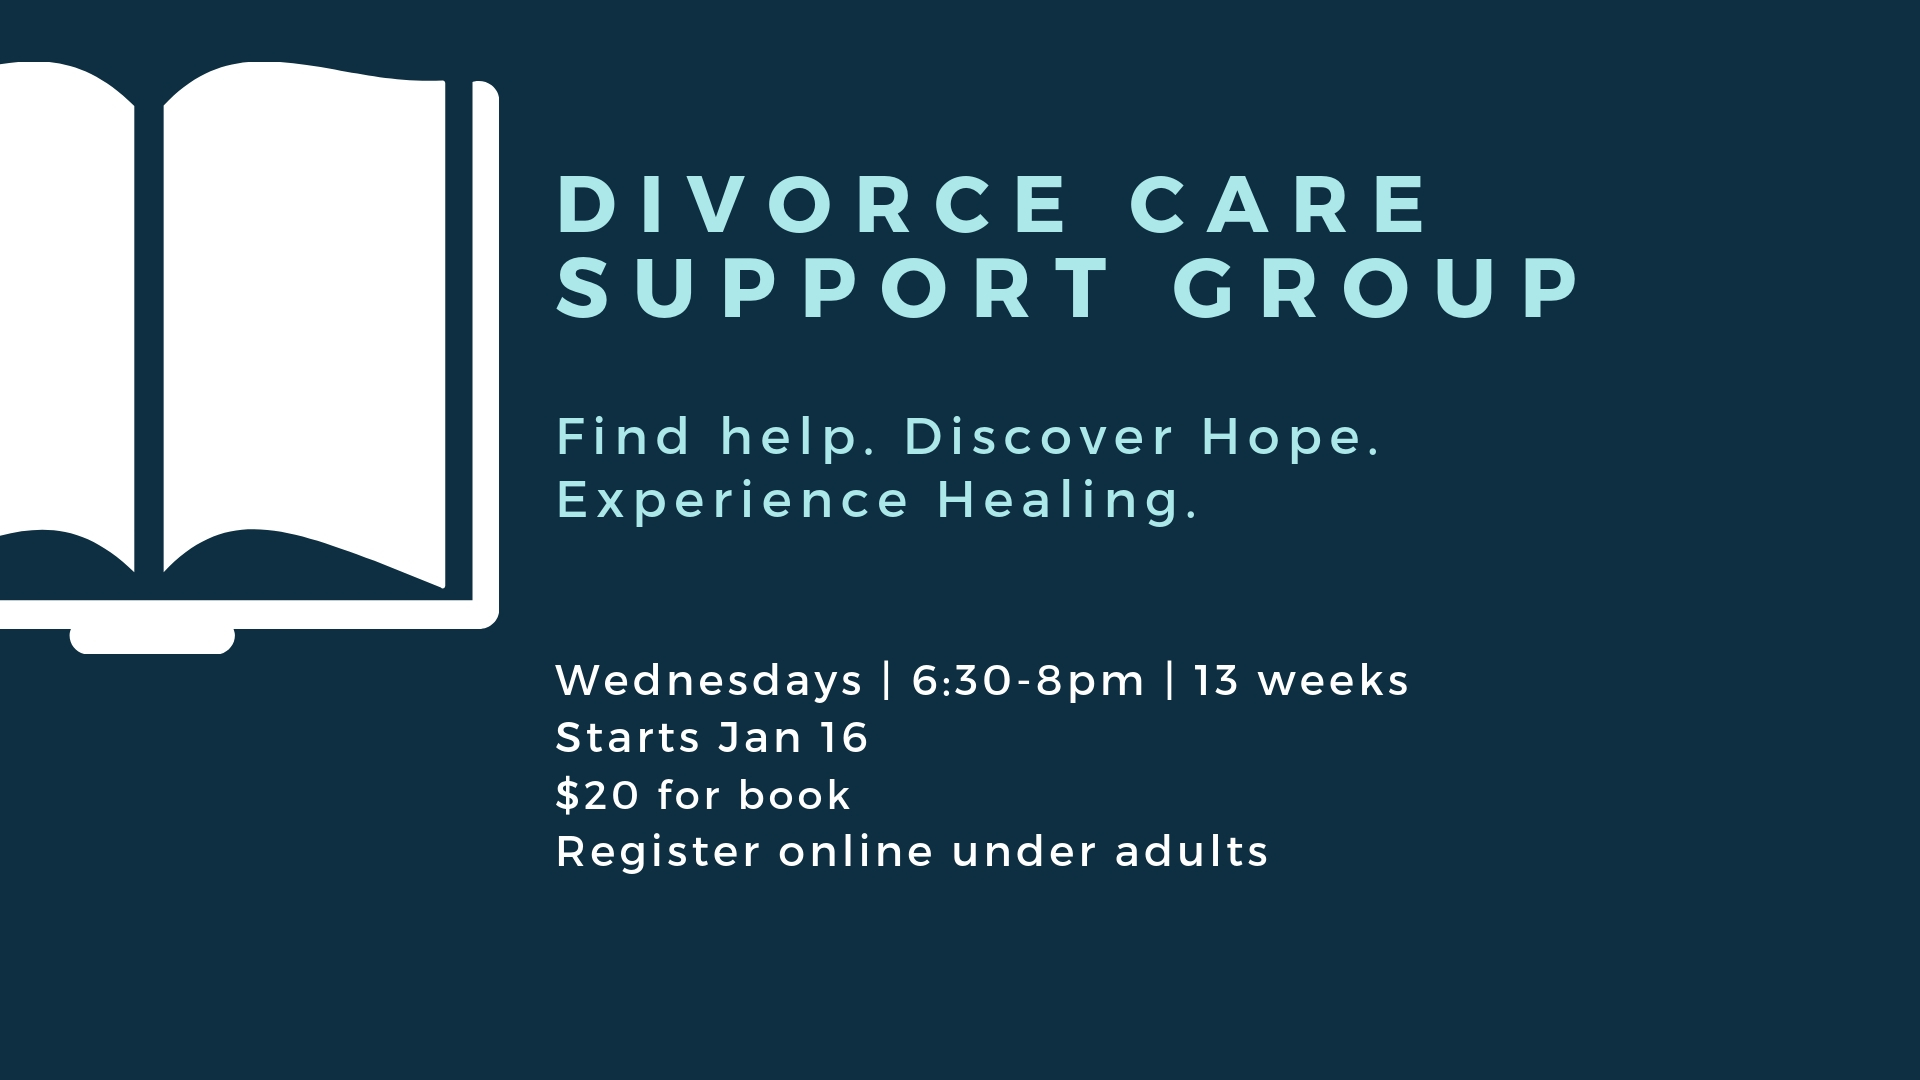 Divorce Care AnnSlide (2).jpg